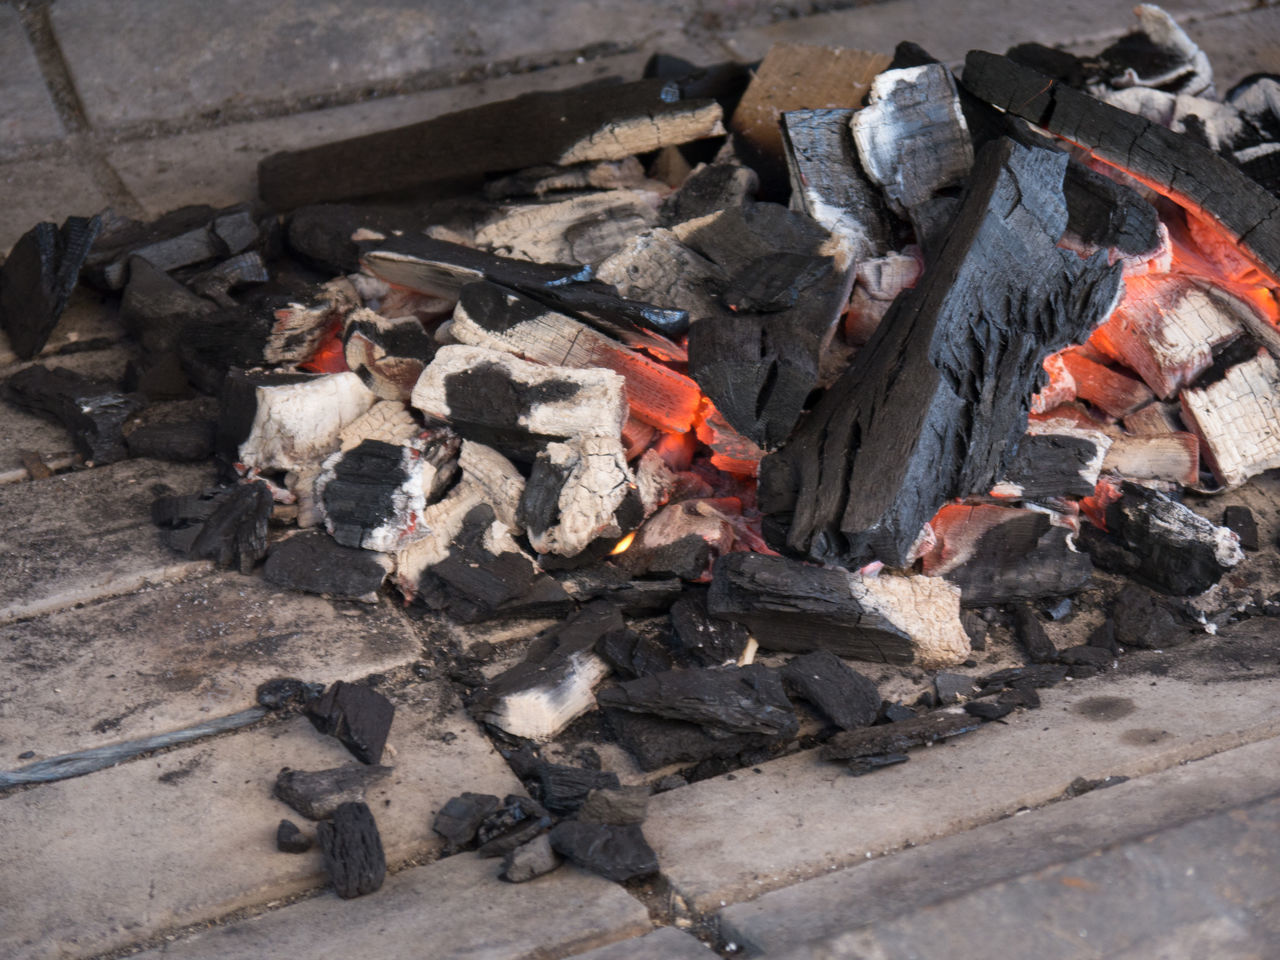 Ashes Barbeque Black Charcoal Charcoal Fire Fire Food Preparation Grill Smoldering